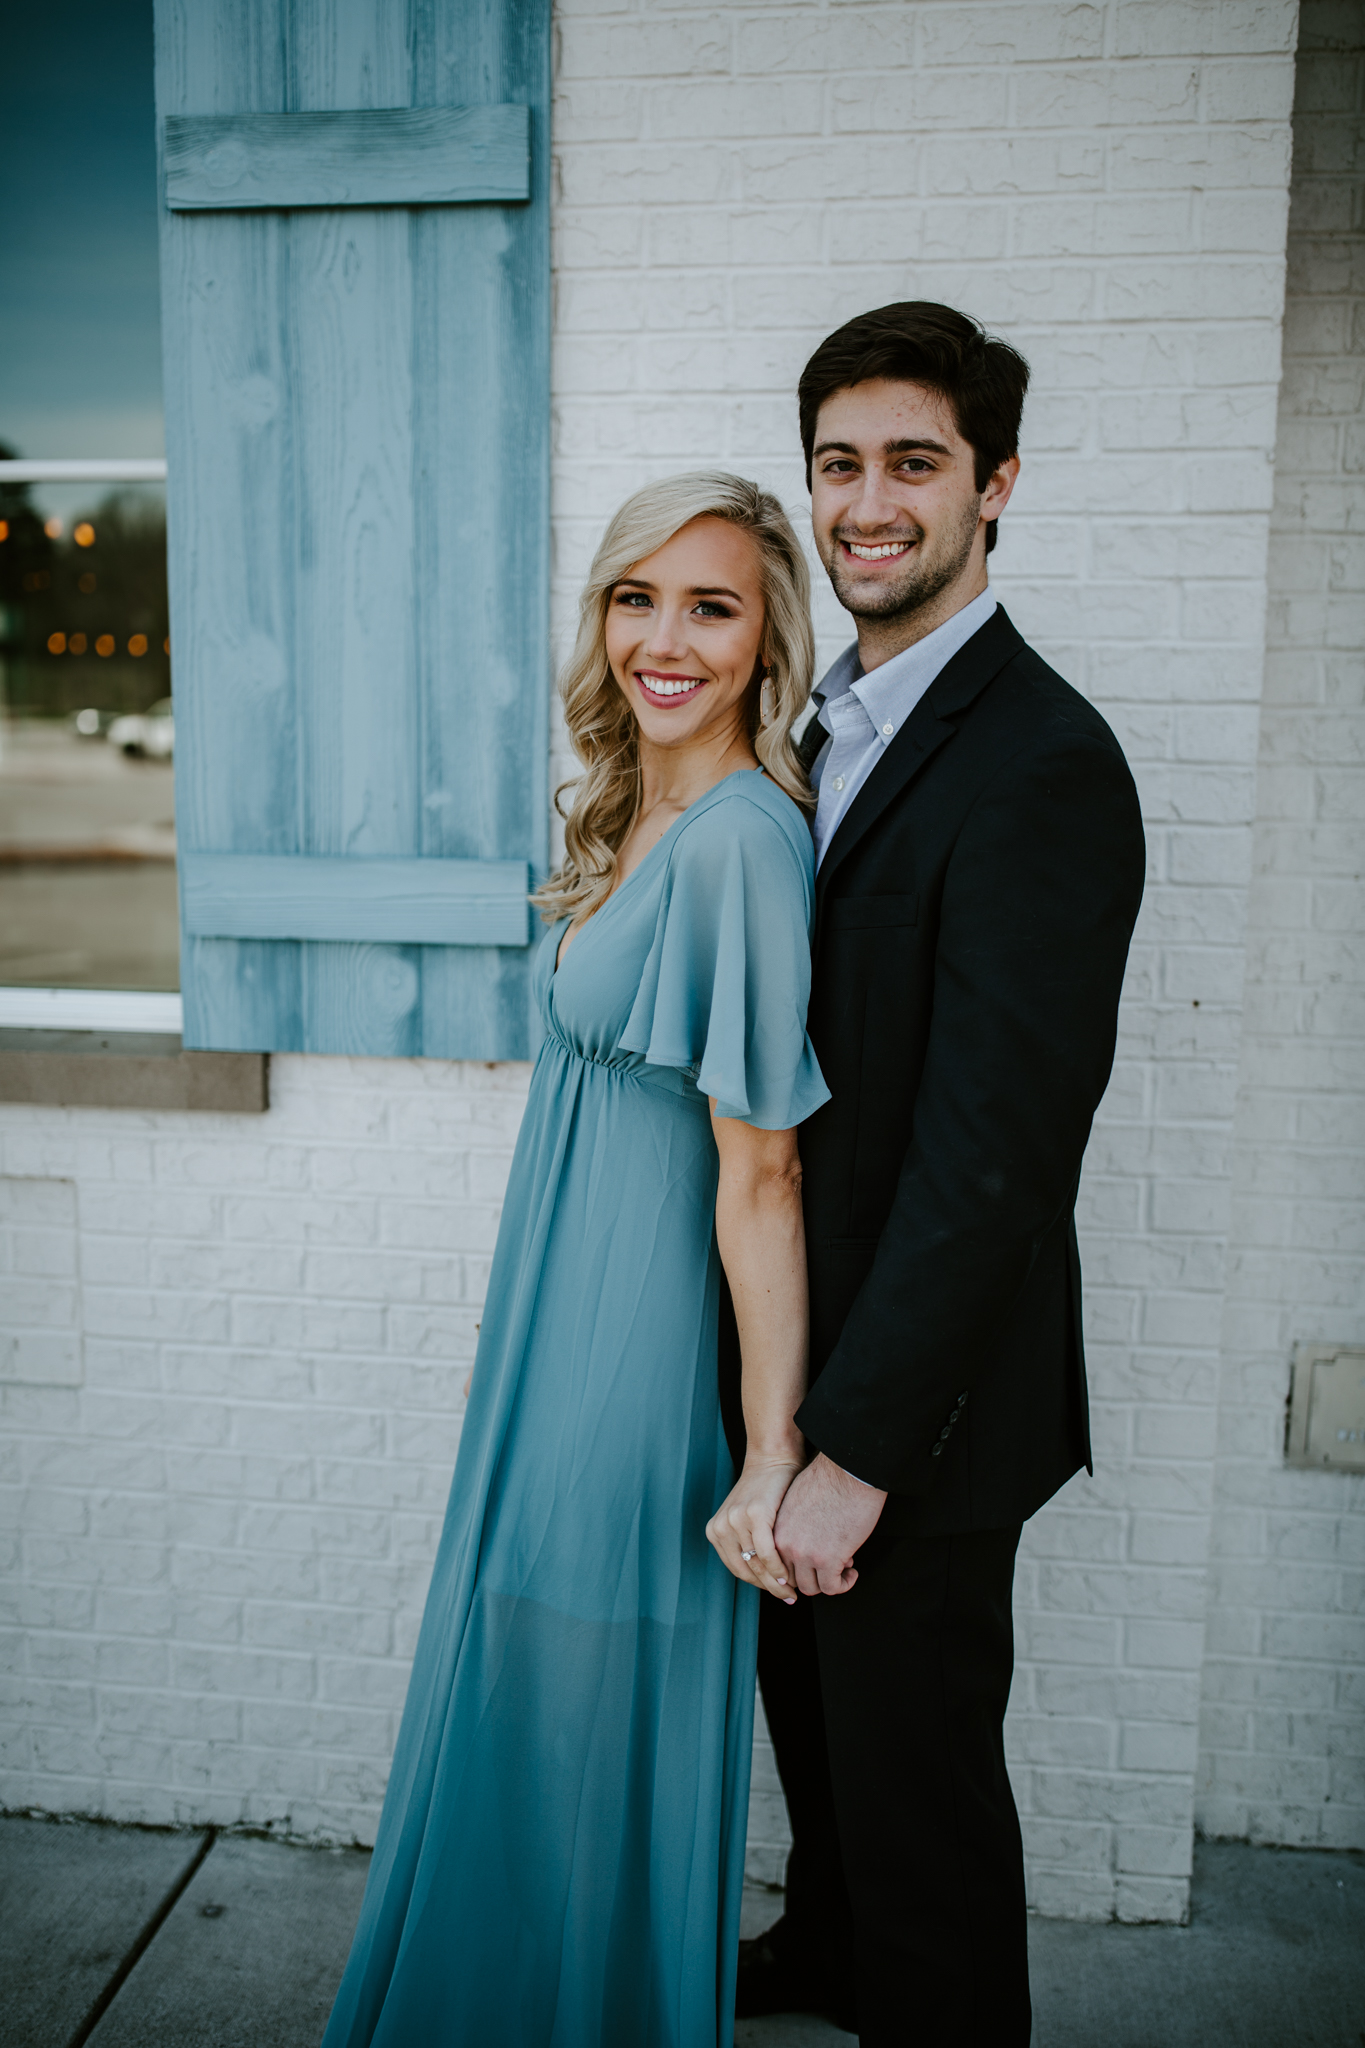 Ali-and-Jake-Chattanooga-Nashville-Tennessee-Wedding-Elopement-Photographer-74.jpg